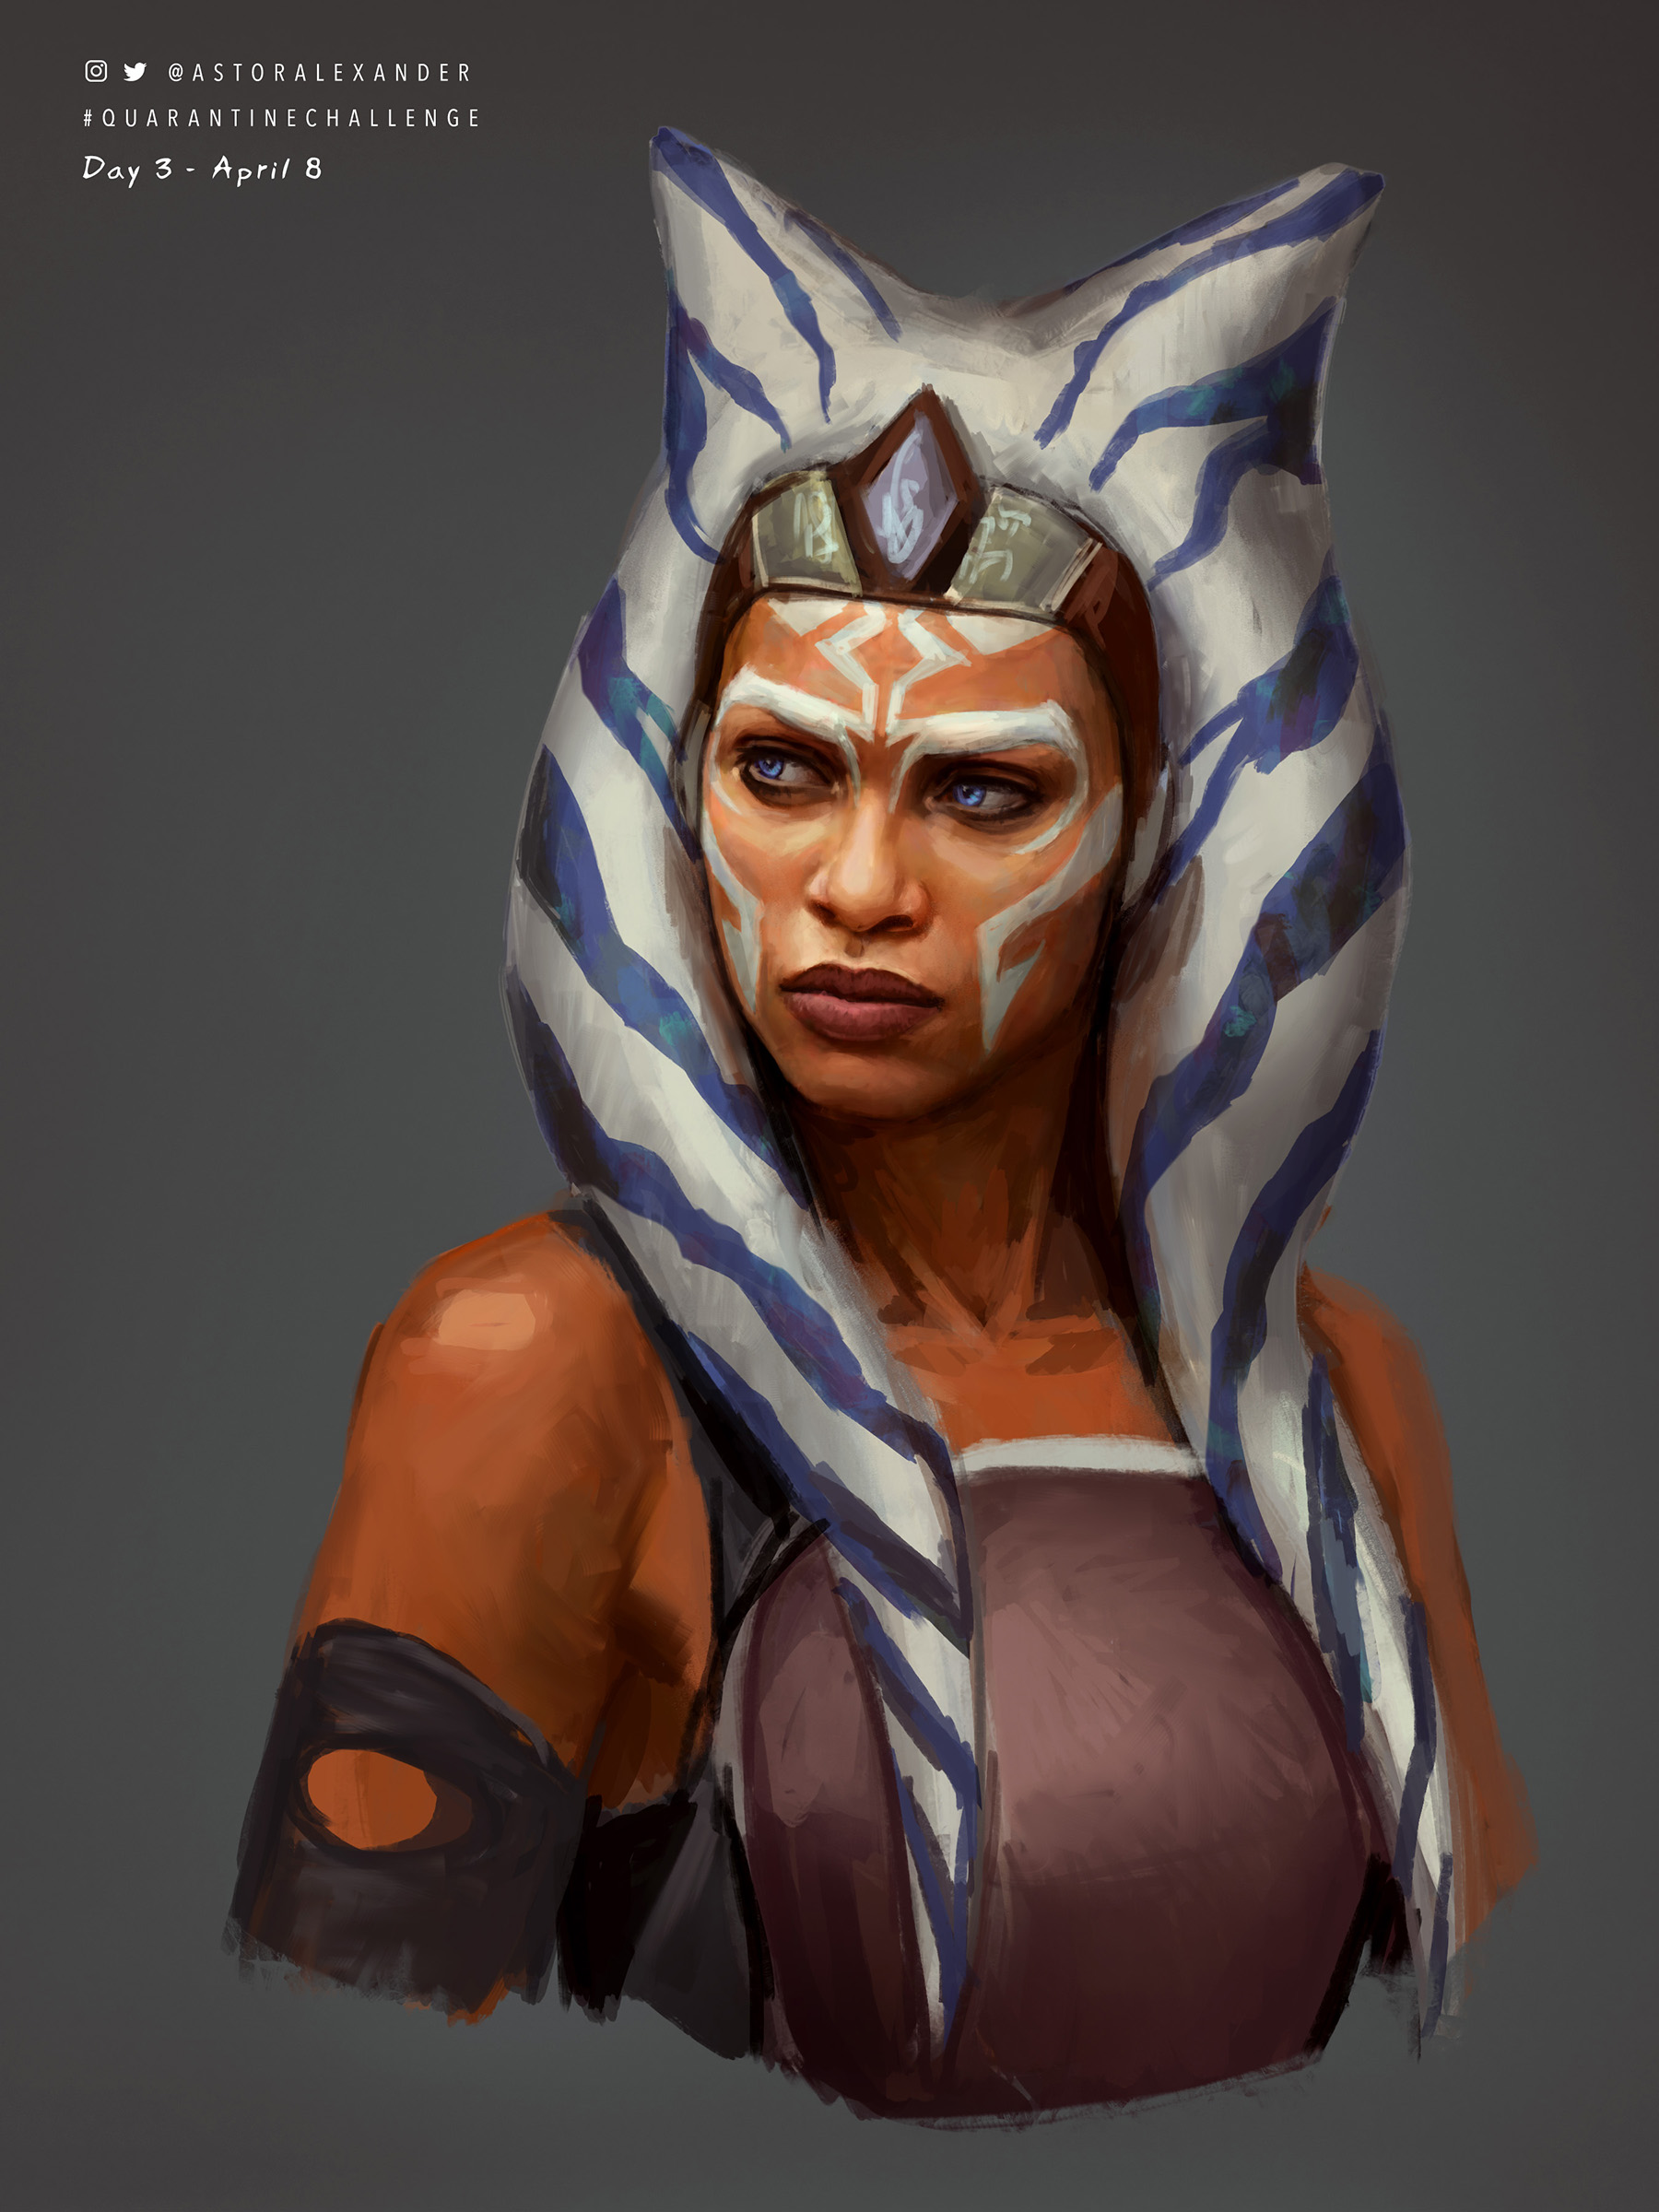 Rosario Dawson as Ahsoka Tano by Astor Alexander